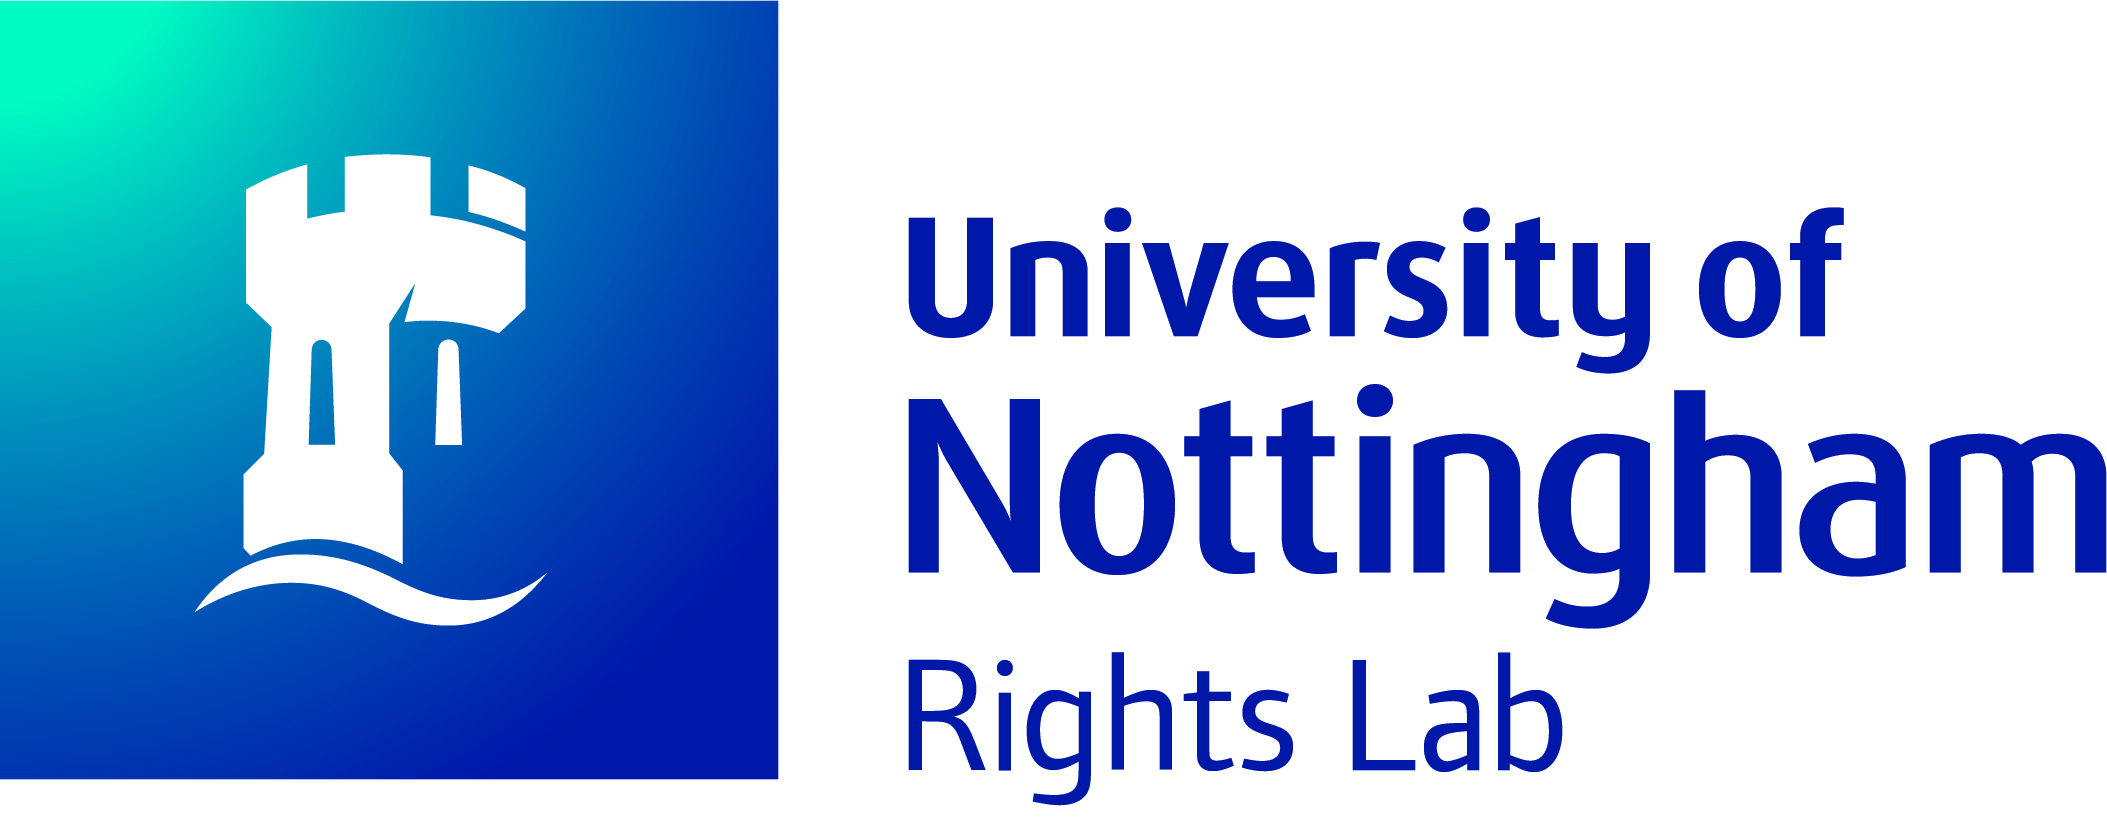 University of Nottingham Rights Lab